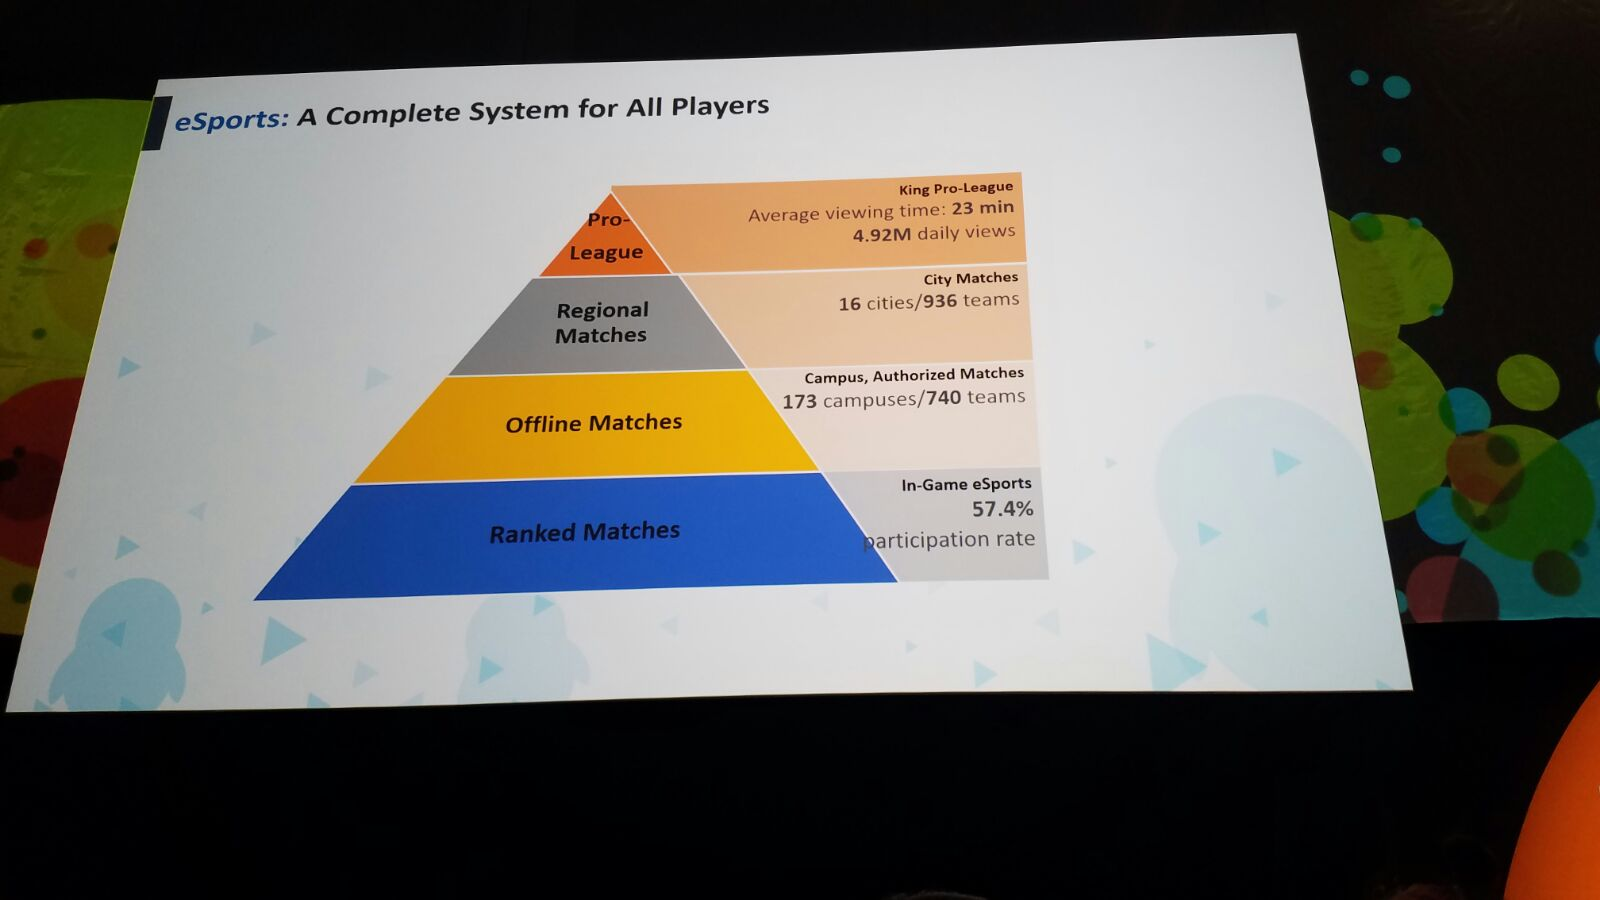 More incredible stats from the Chinese version of the game. Almost 5m people a day watch footage of the King Pro-League setup for the game.